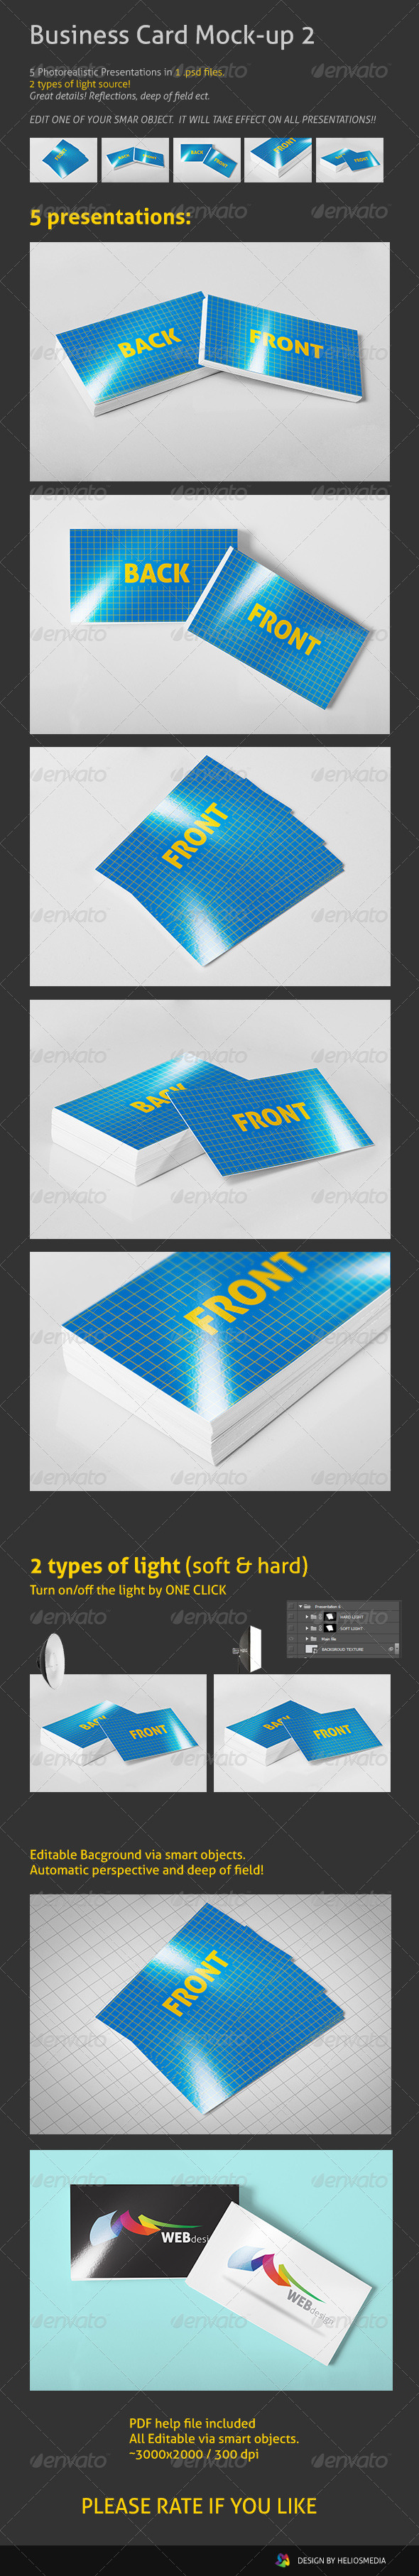 Realistic Business Card Mock-up 2 - Business Cards Print